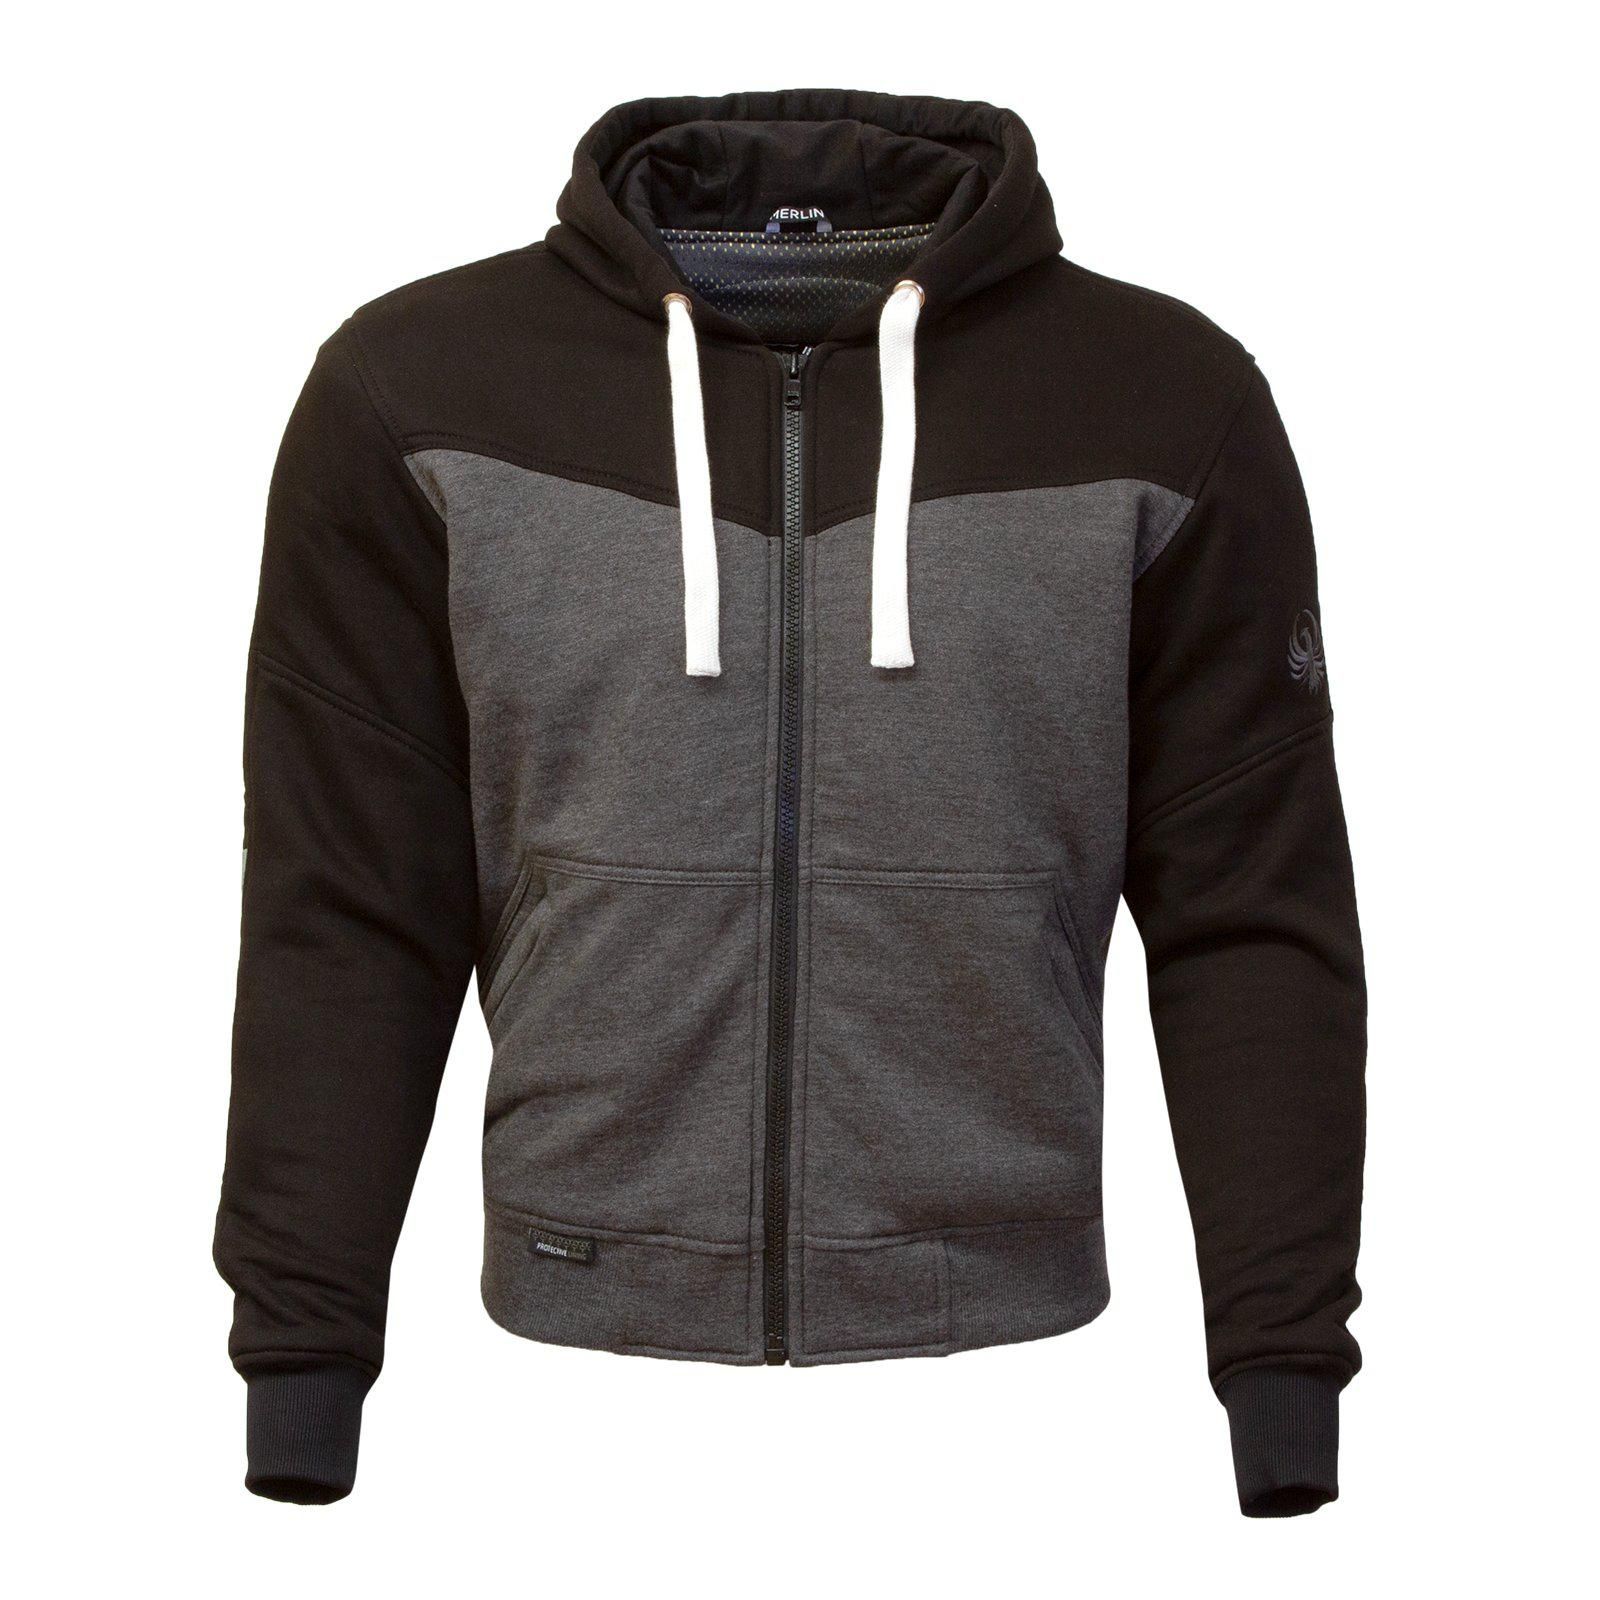 Hurley Hoody-Protective Hoody-Merlin-Black/Grey-Small-Merlin Bike Gear